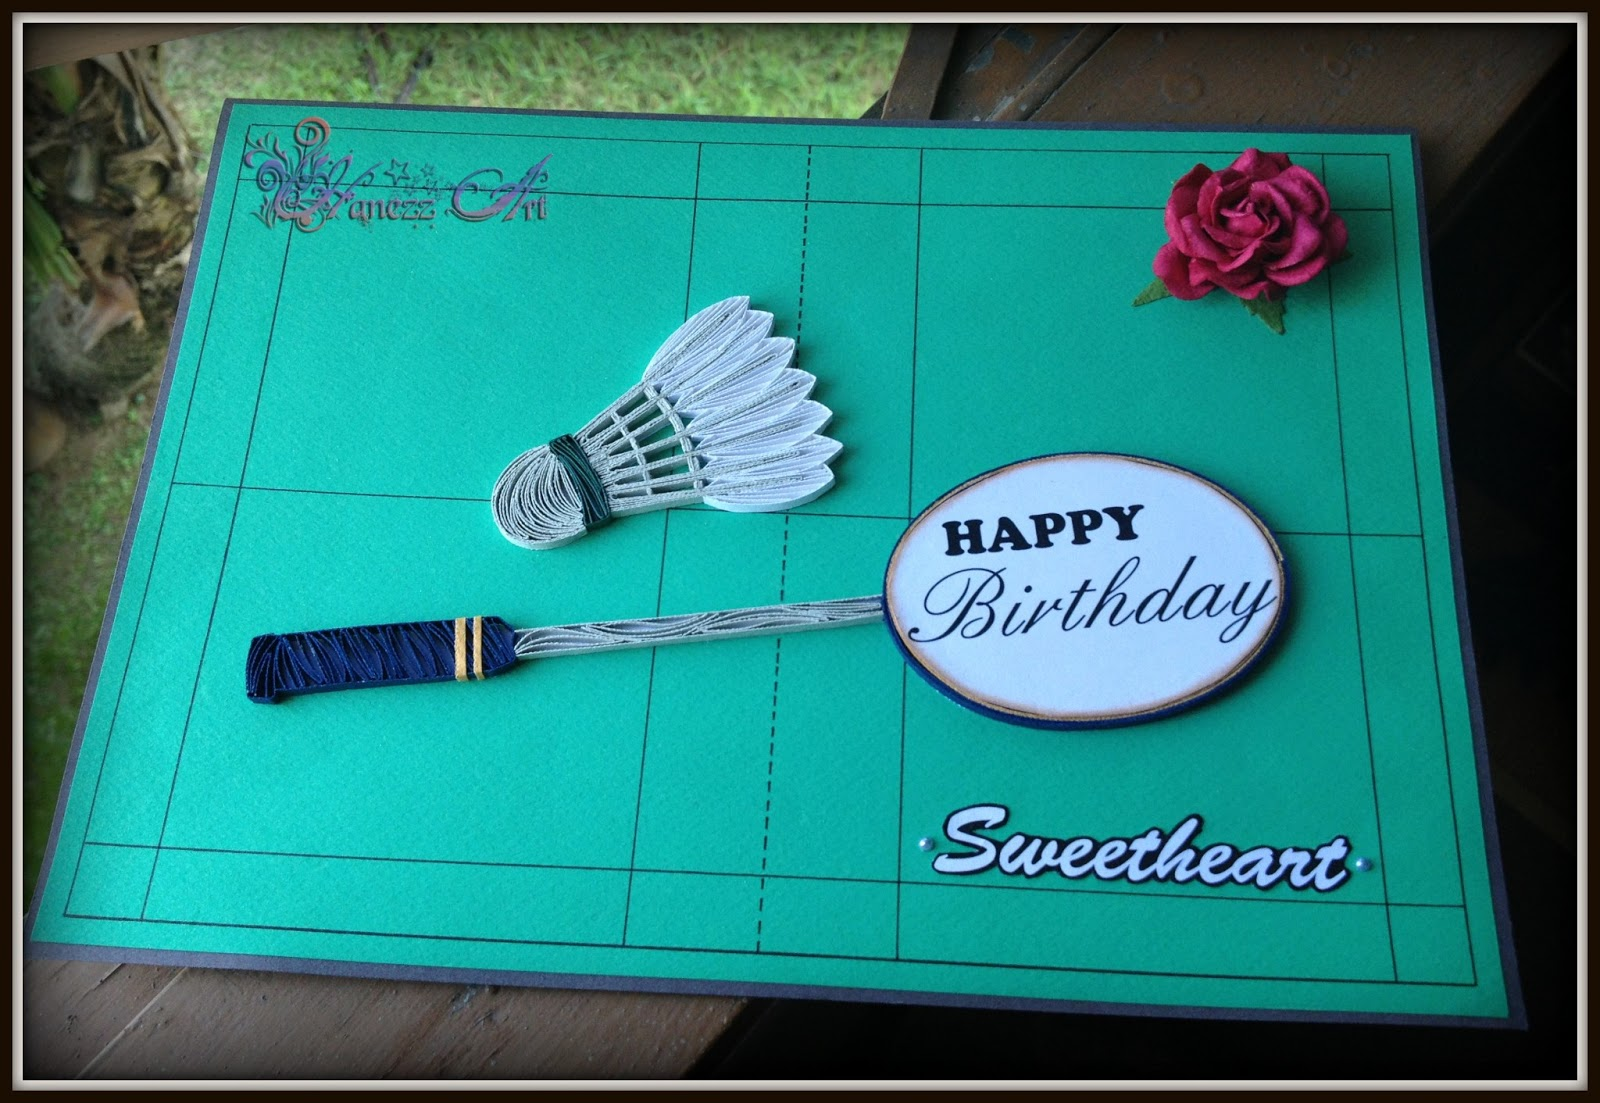 Hanezz Art Card Badminton With Rose